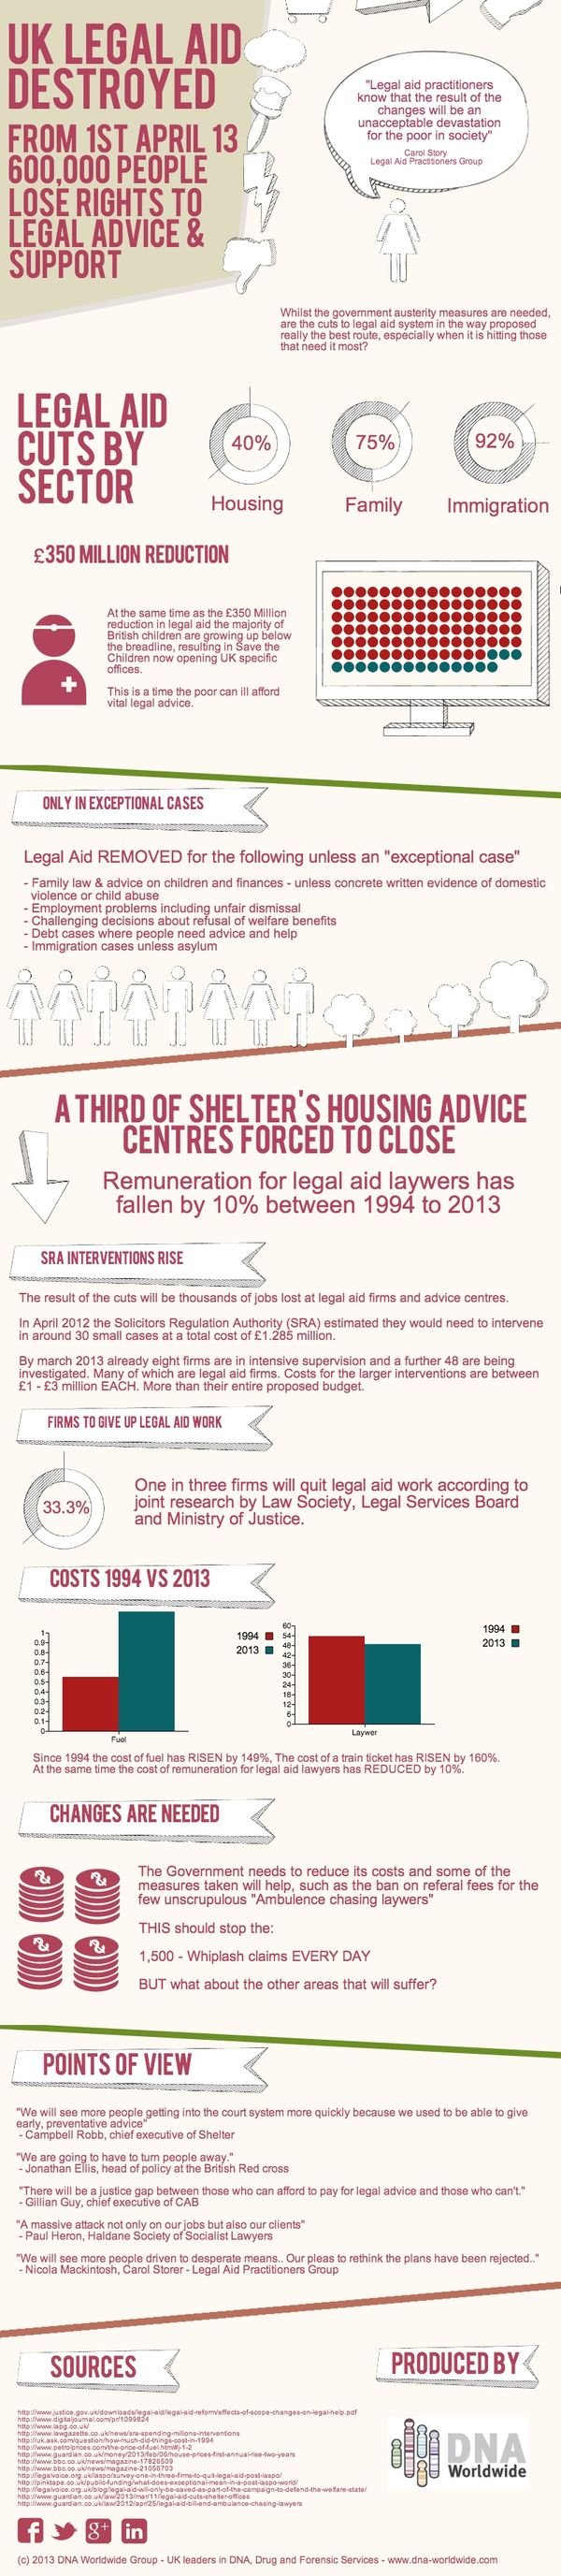 UK Legal Aid Cuts-Infographic